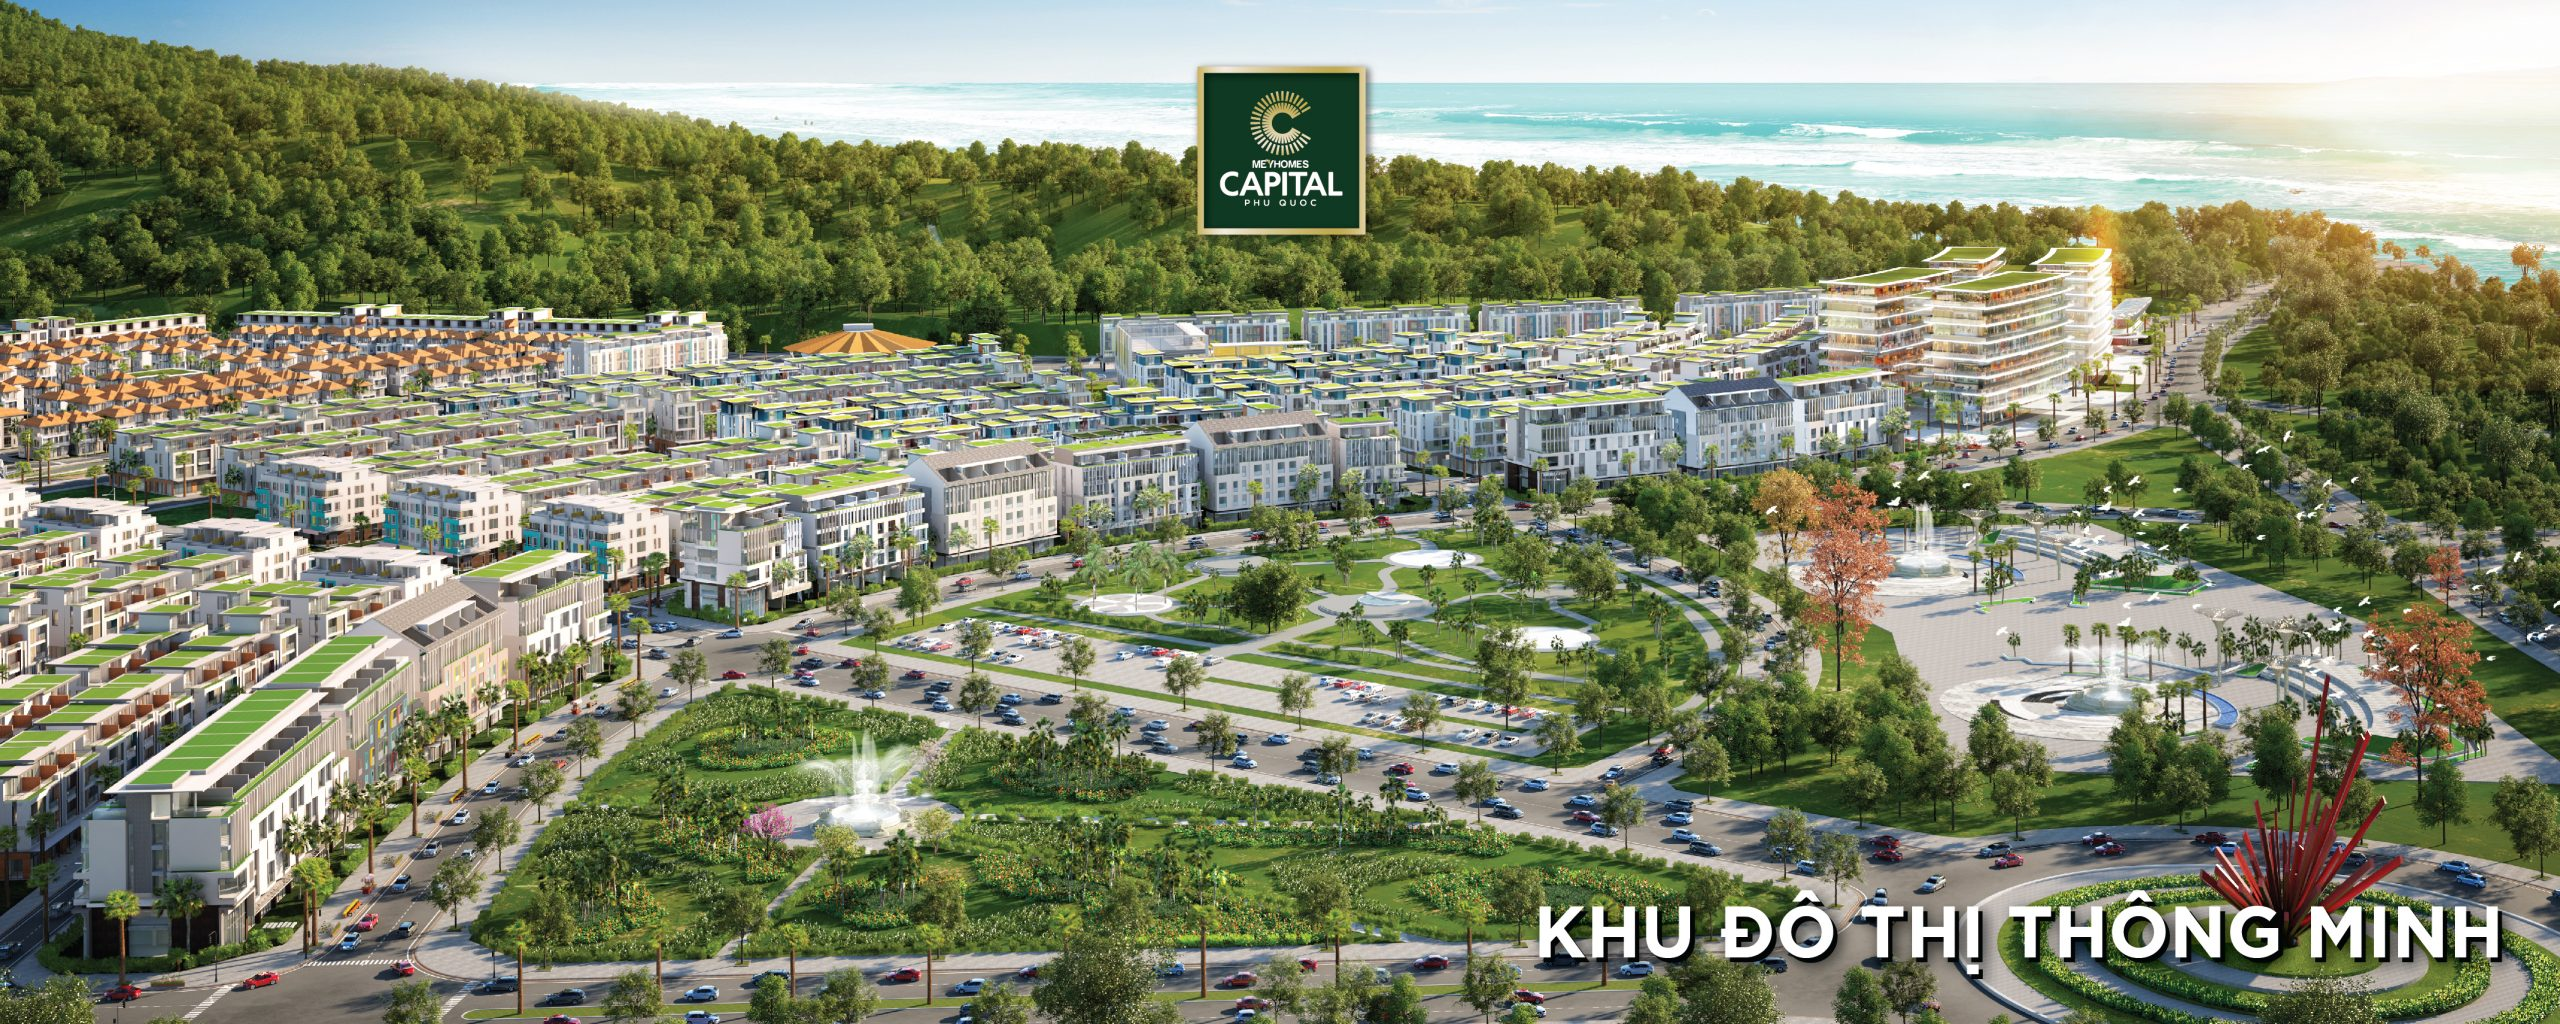 meyhomes-capital-phu-quoc-31